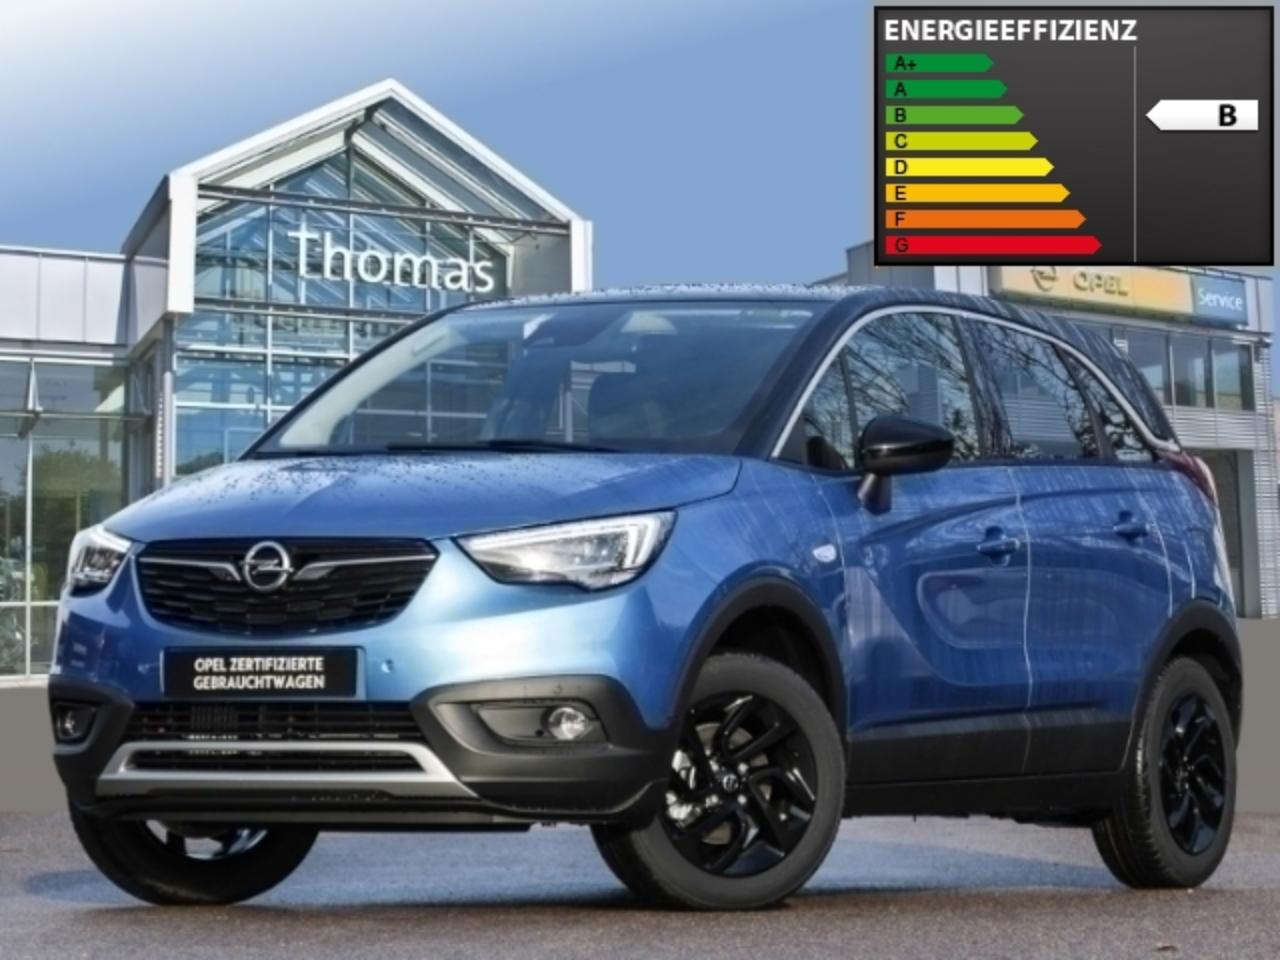 Opel Crossland X INNOVATION 1.2 Automatik Kamera DAB Winter-Paket b